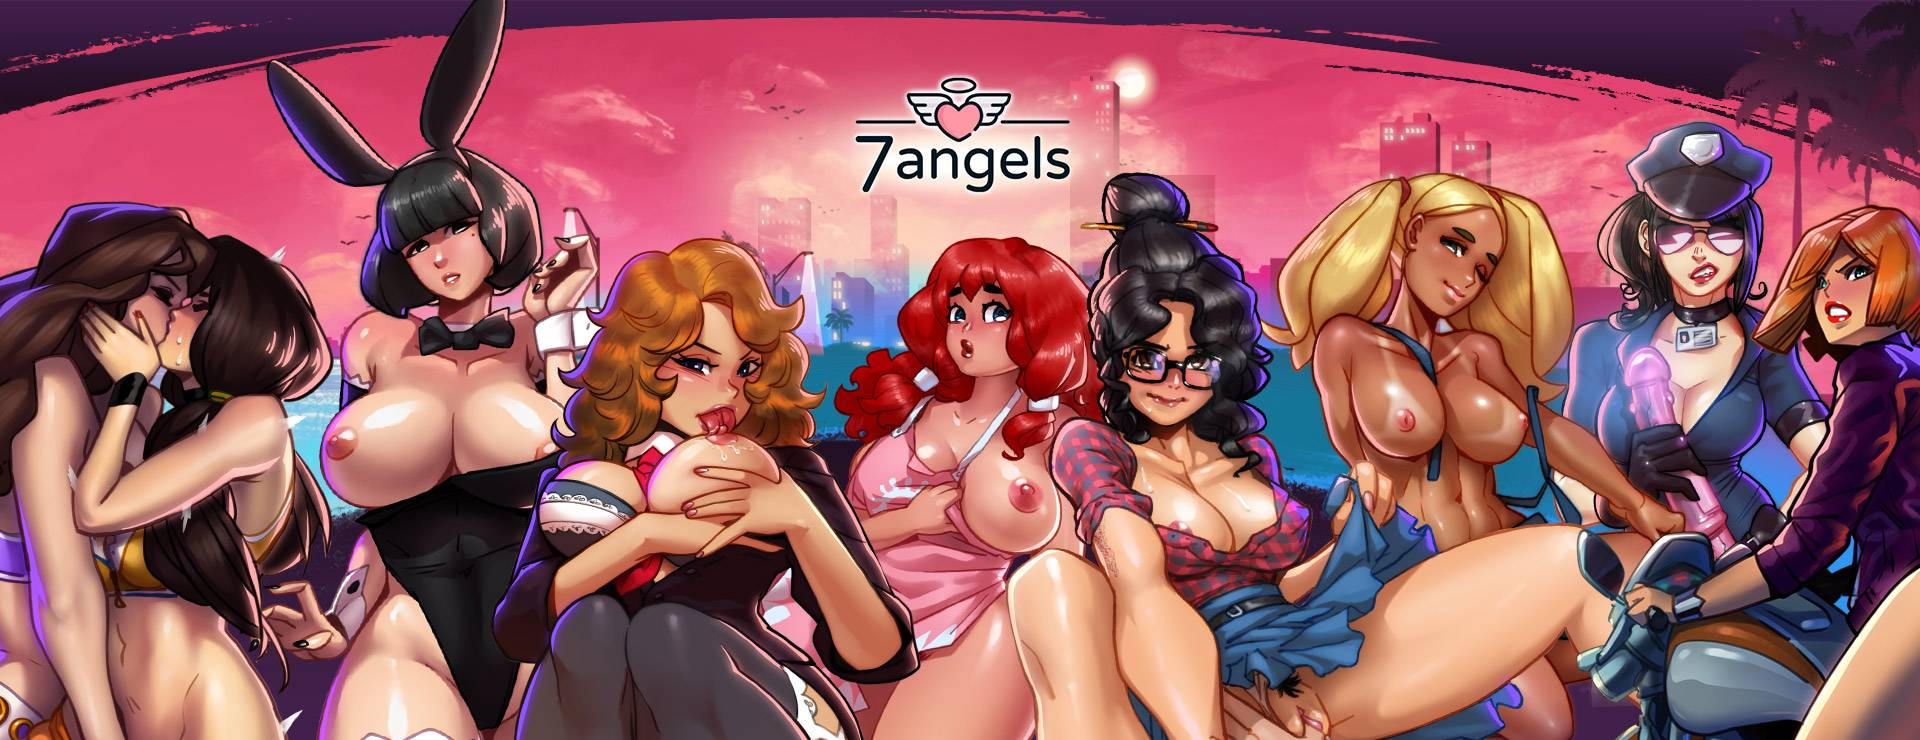 7 Angels - Casual Game